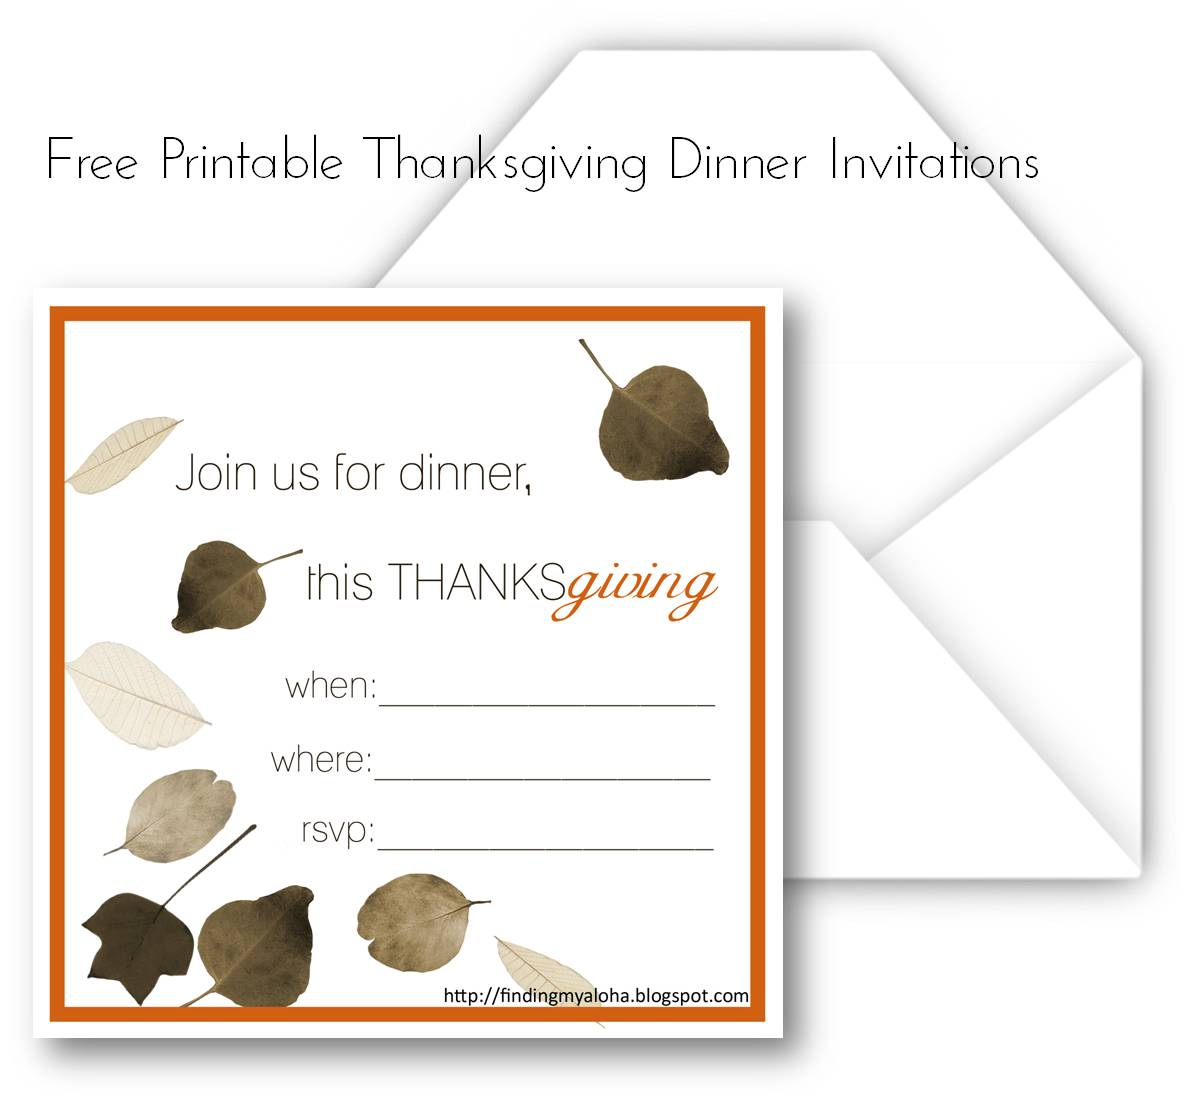 free thanksgiving templates - free printable thanksgiving dinner invitations